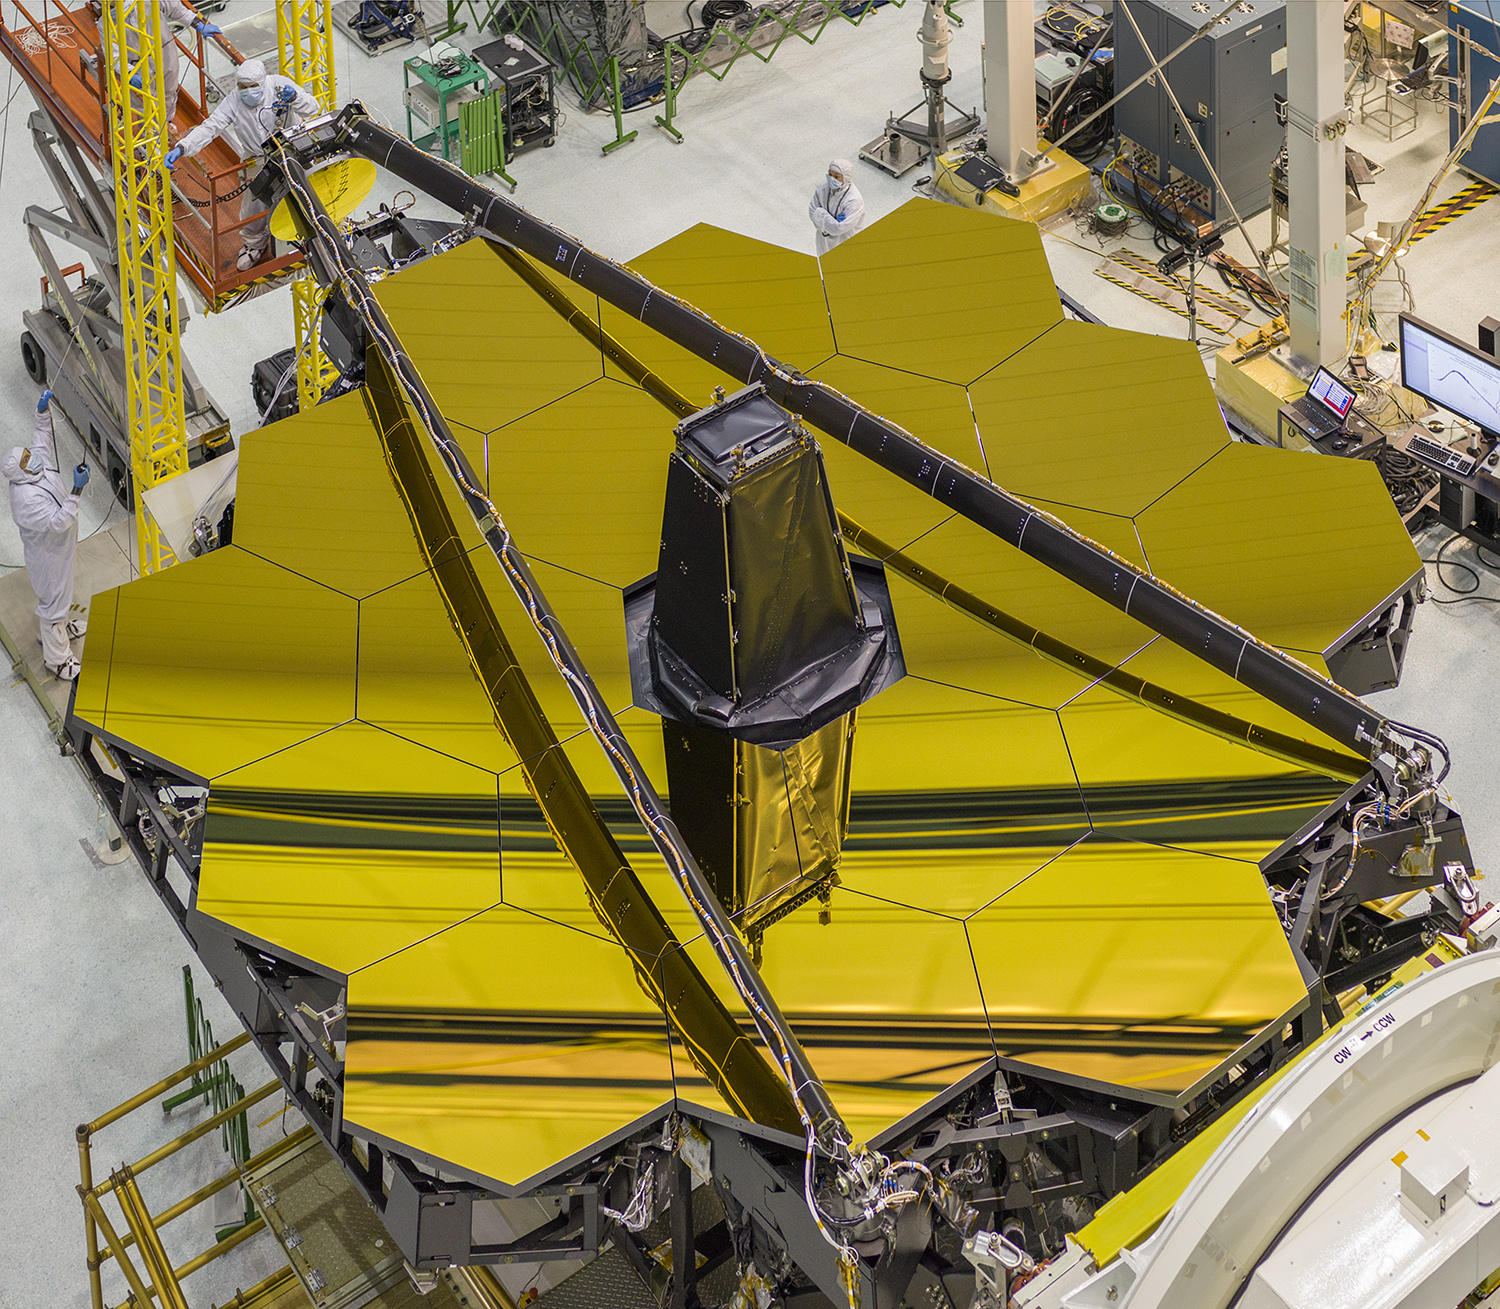 The golden mirrors of NASA's Names Webb Space Telescope are seen in this image inside the clean room at the space agency's Goddard Space Flight Center. The space telescope is undergoing testing ahead of its 2018 launch.